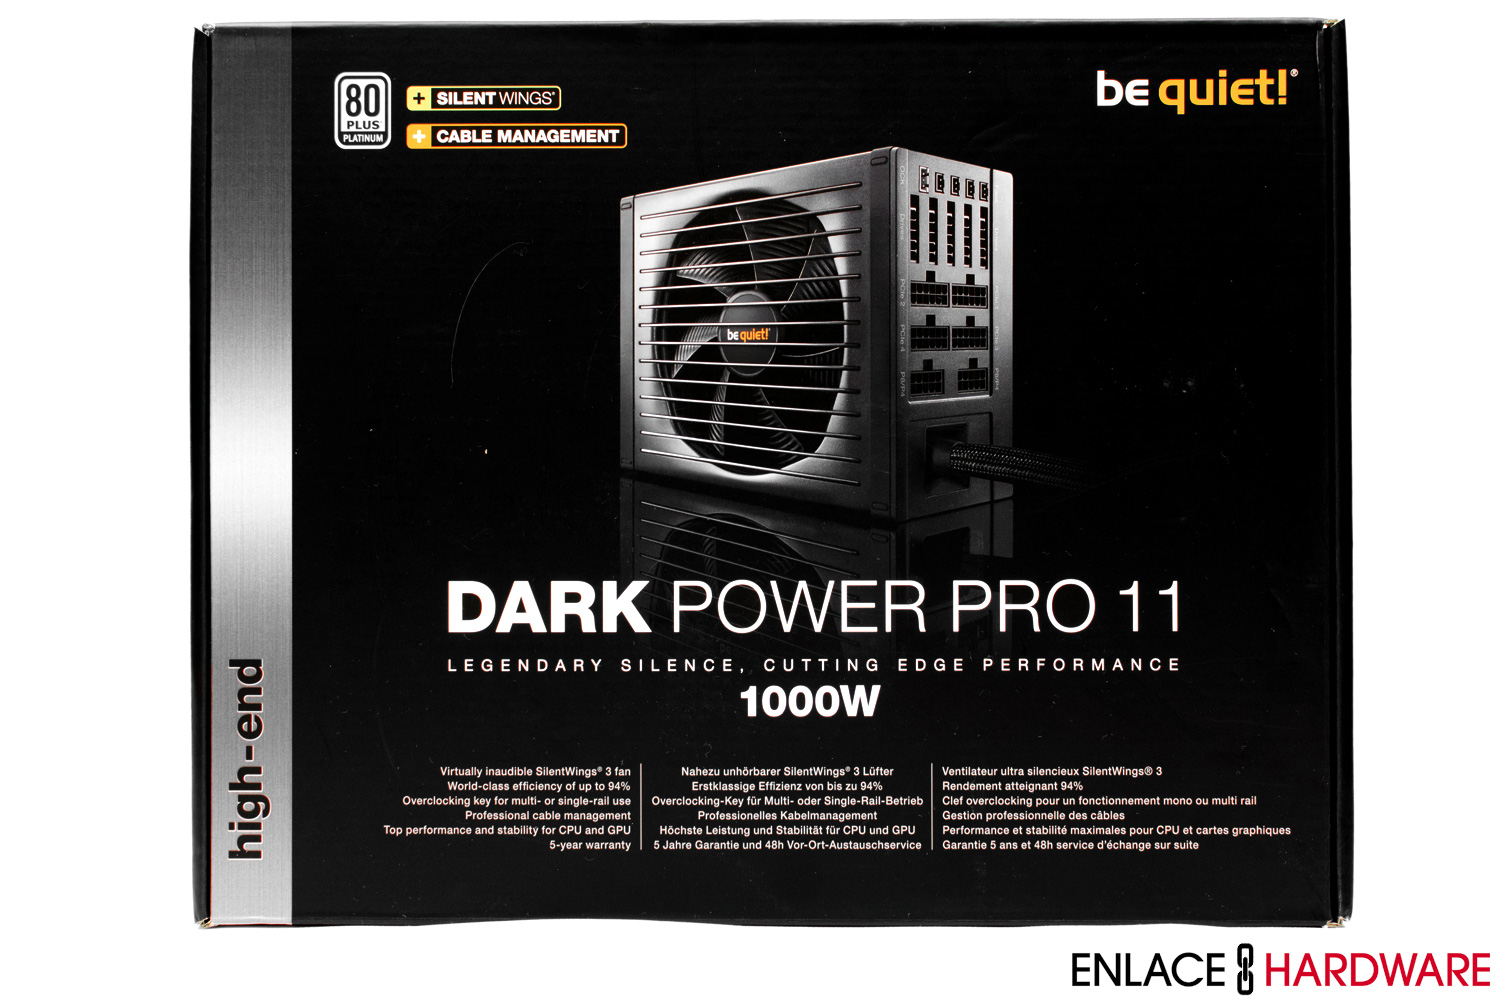 Be-Quiet-Dark-Power-Pro-11-1000W-Review-2